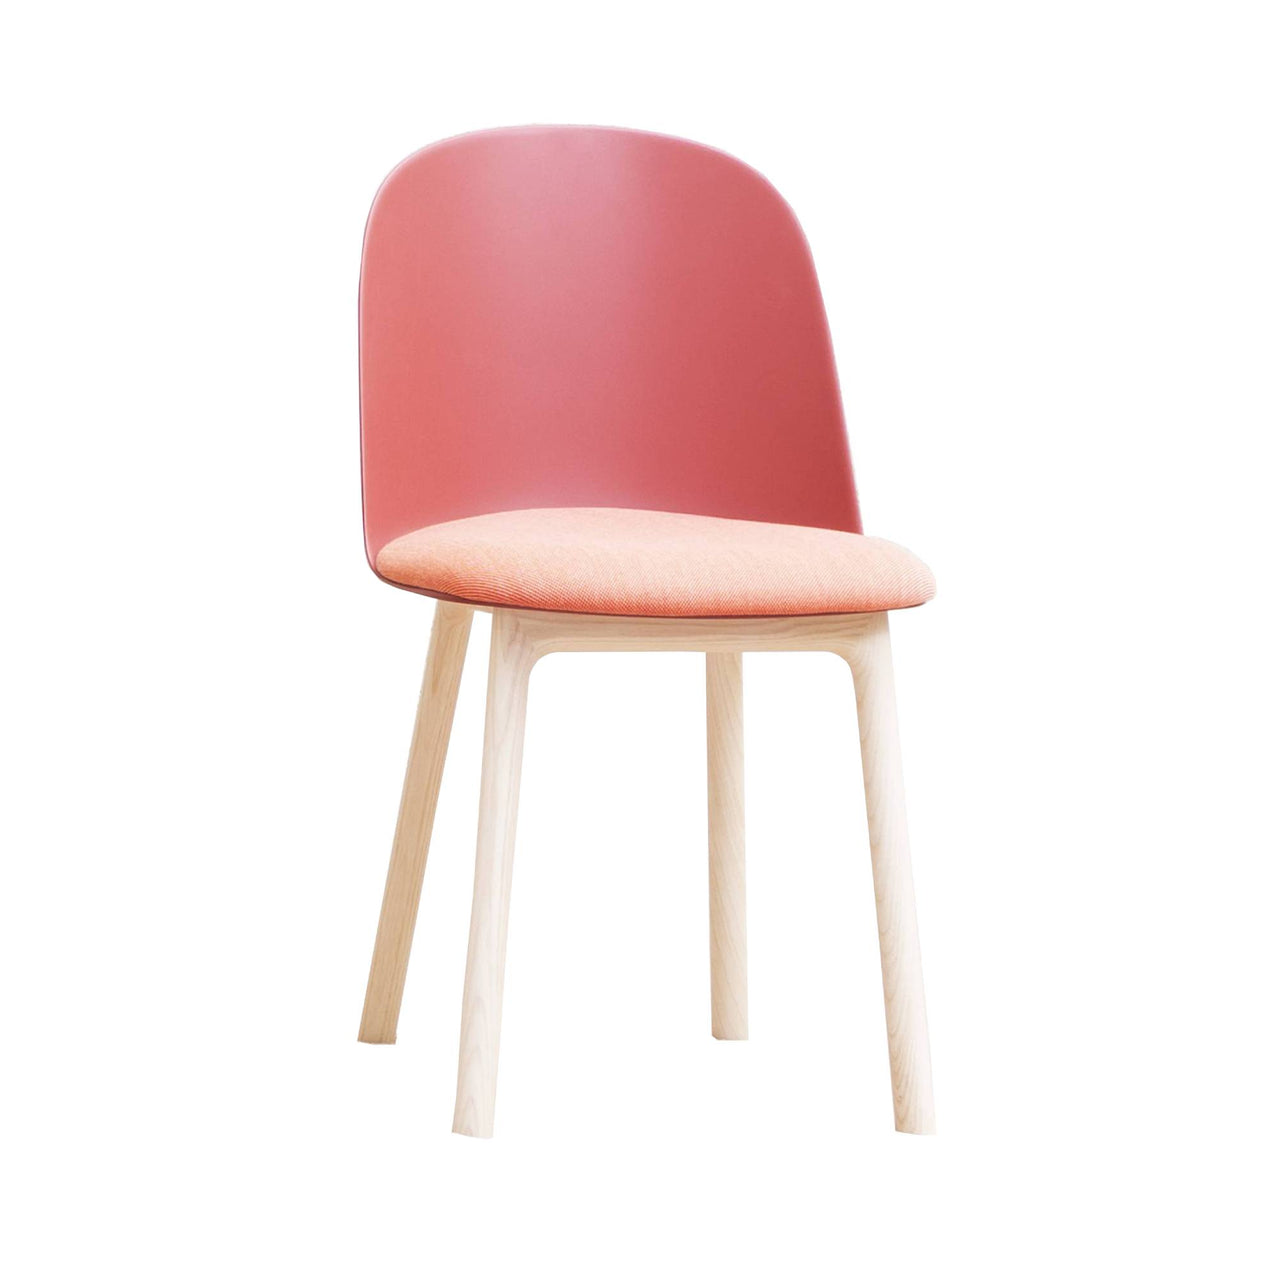 Mariolina Side Chair: Wood Base + Upholstery + Marsala Red Shell